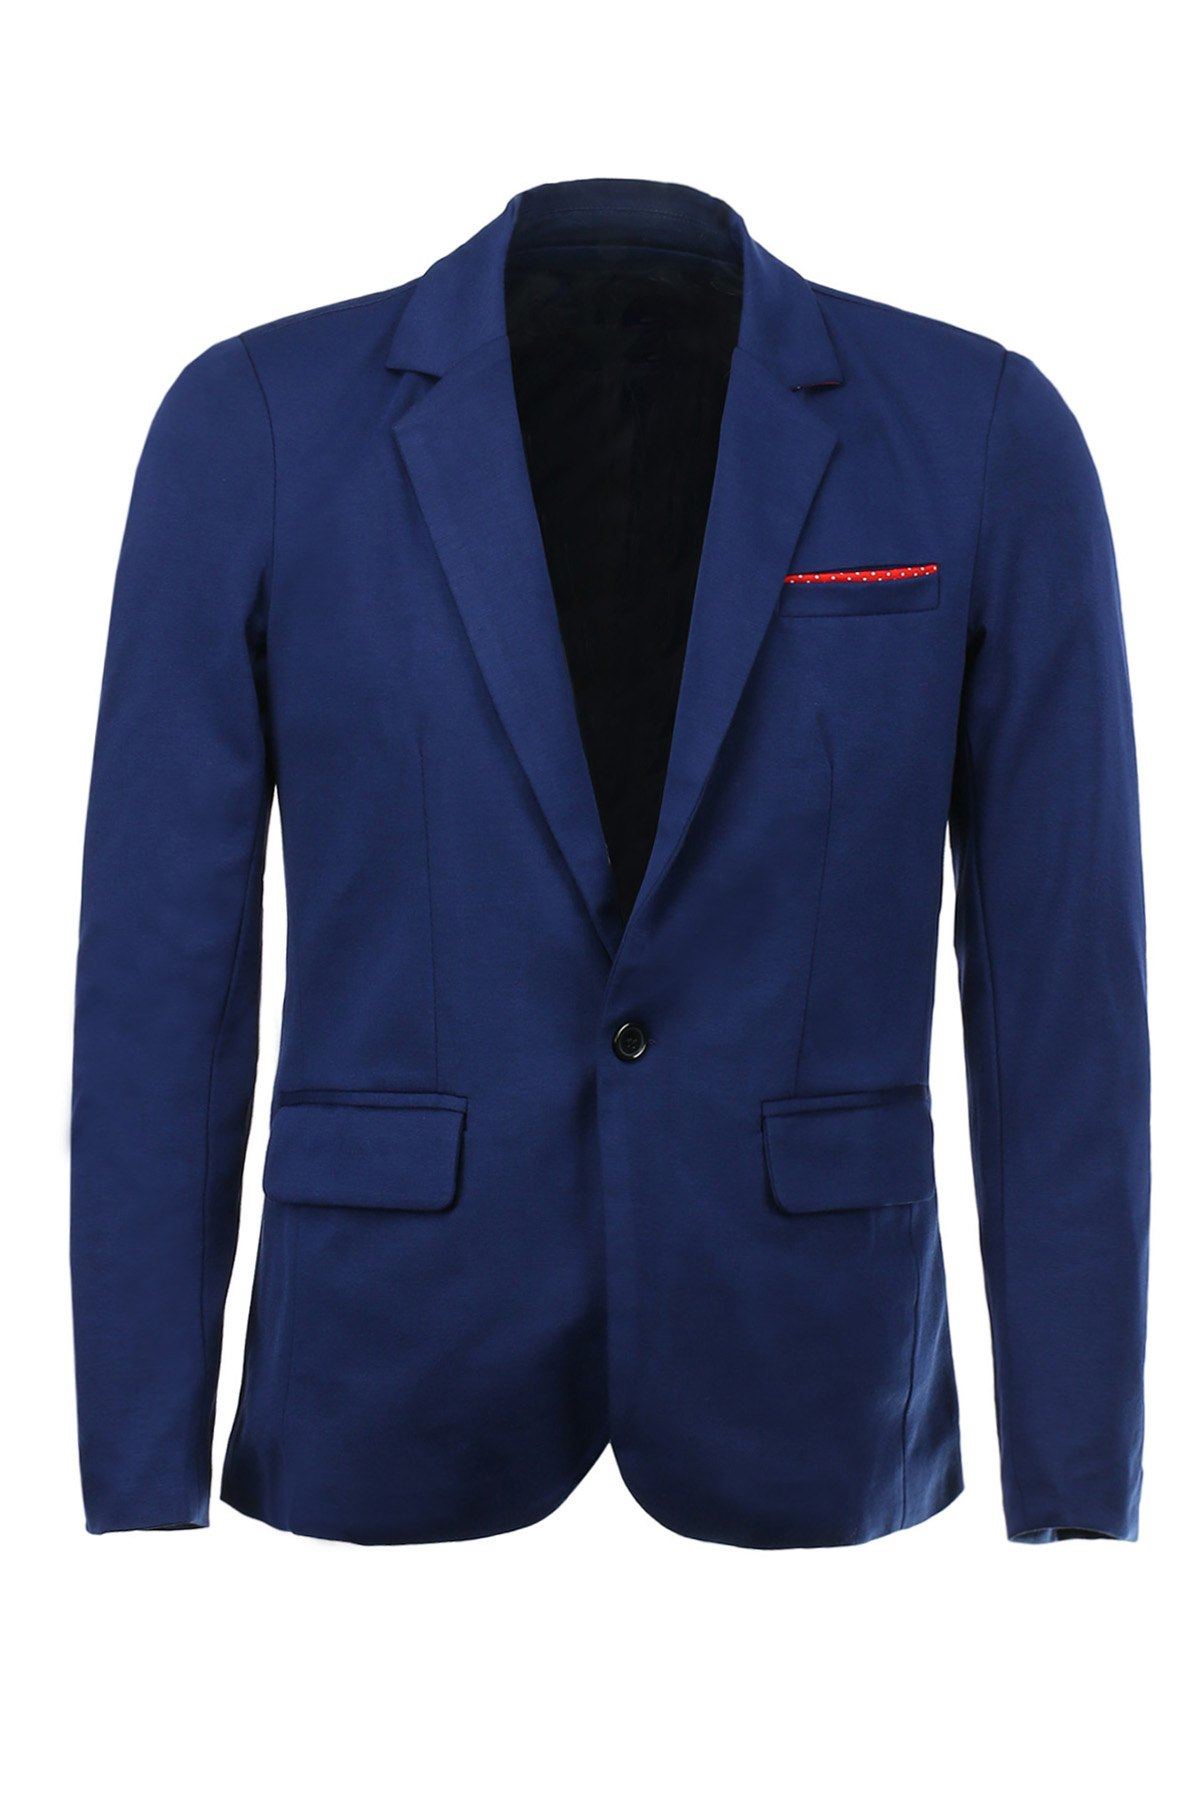 Color Block Polka Dot Spliced Lapel Long Sleeves Men's Single-Breasted Blazer - DEEP BLUE M